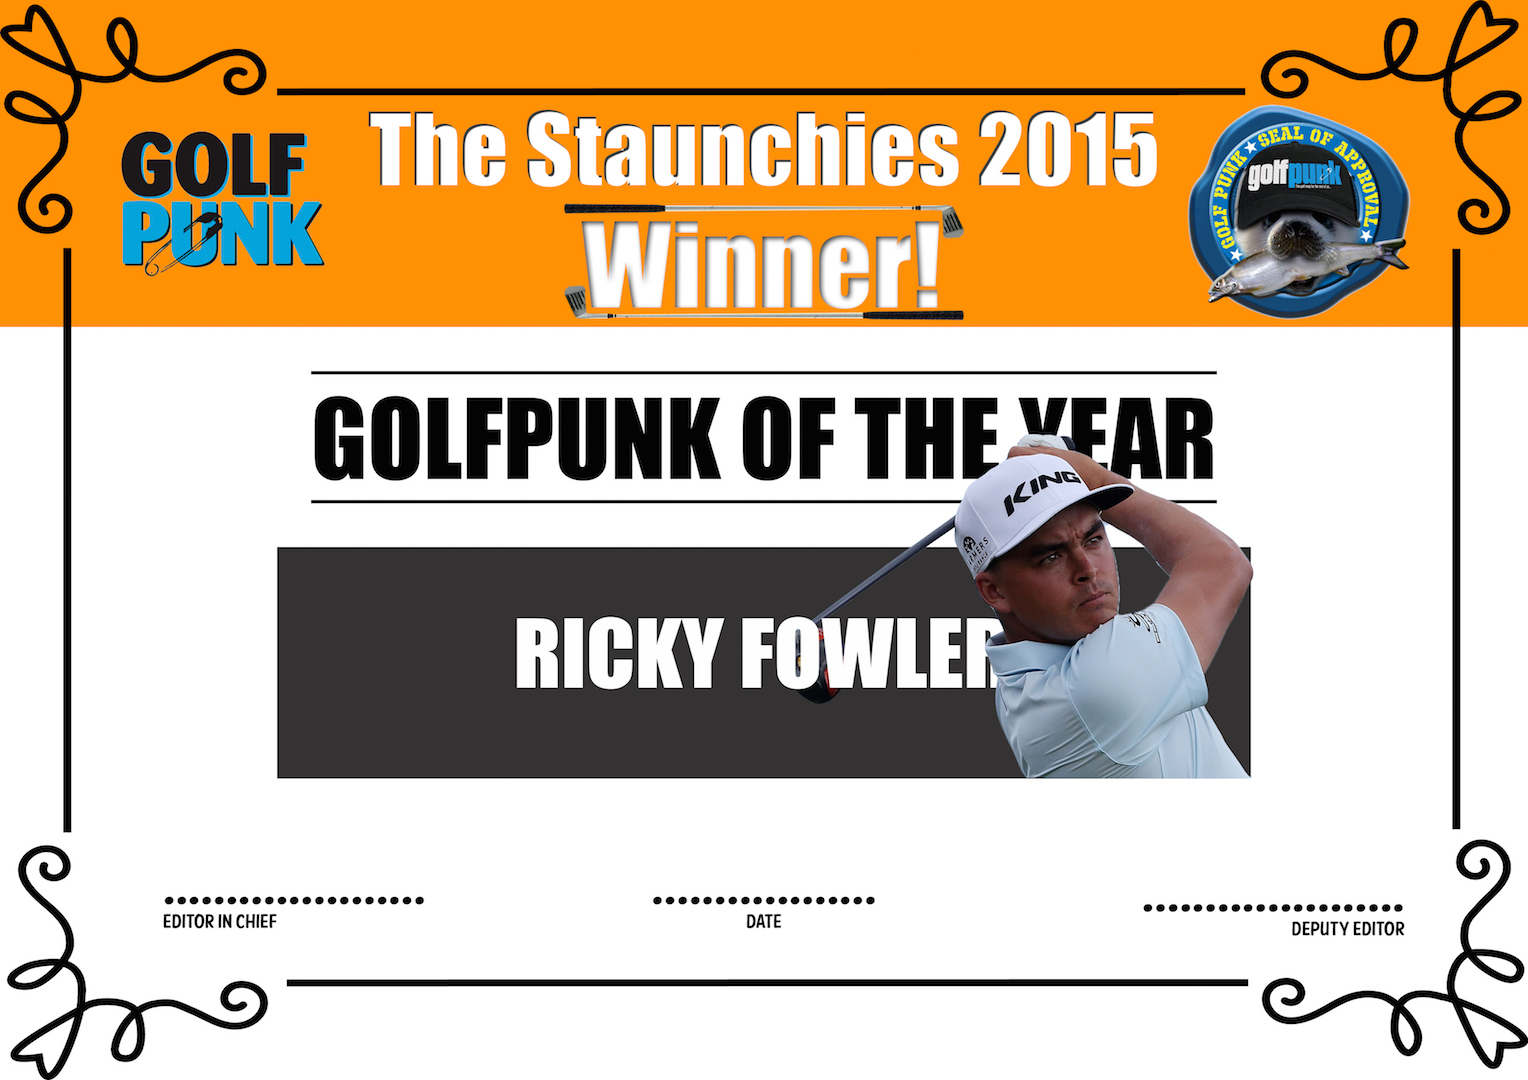 The Staunchies 2015 Results – Equipment